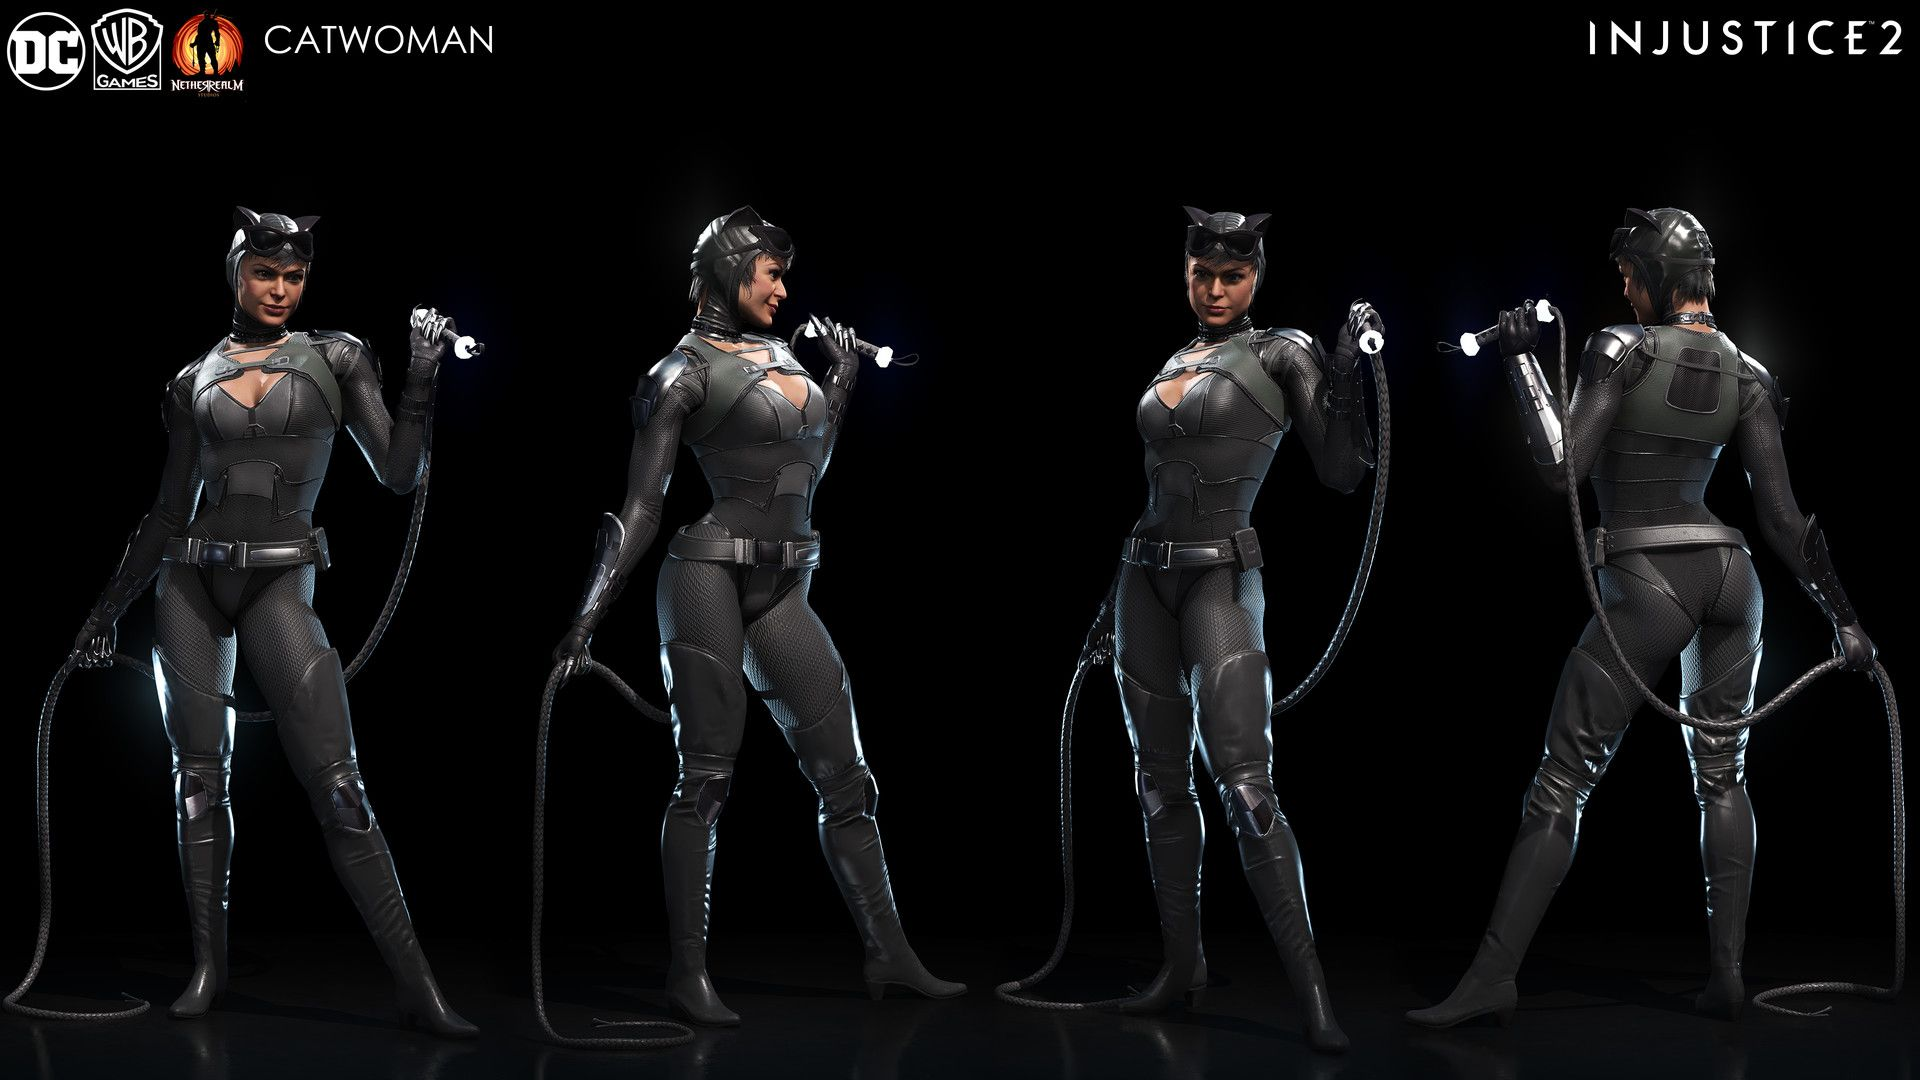 Catwoman Cosplay Catwoman Injustice 2